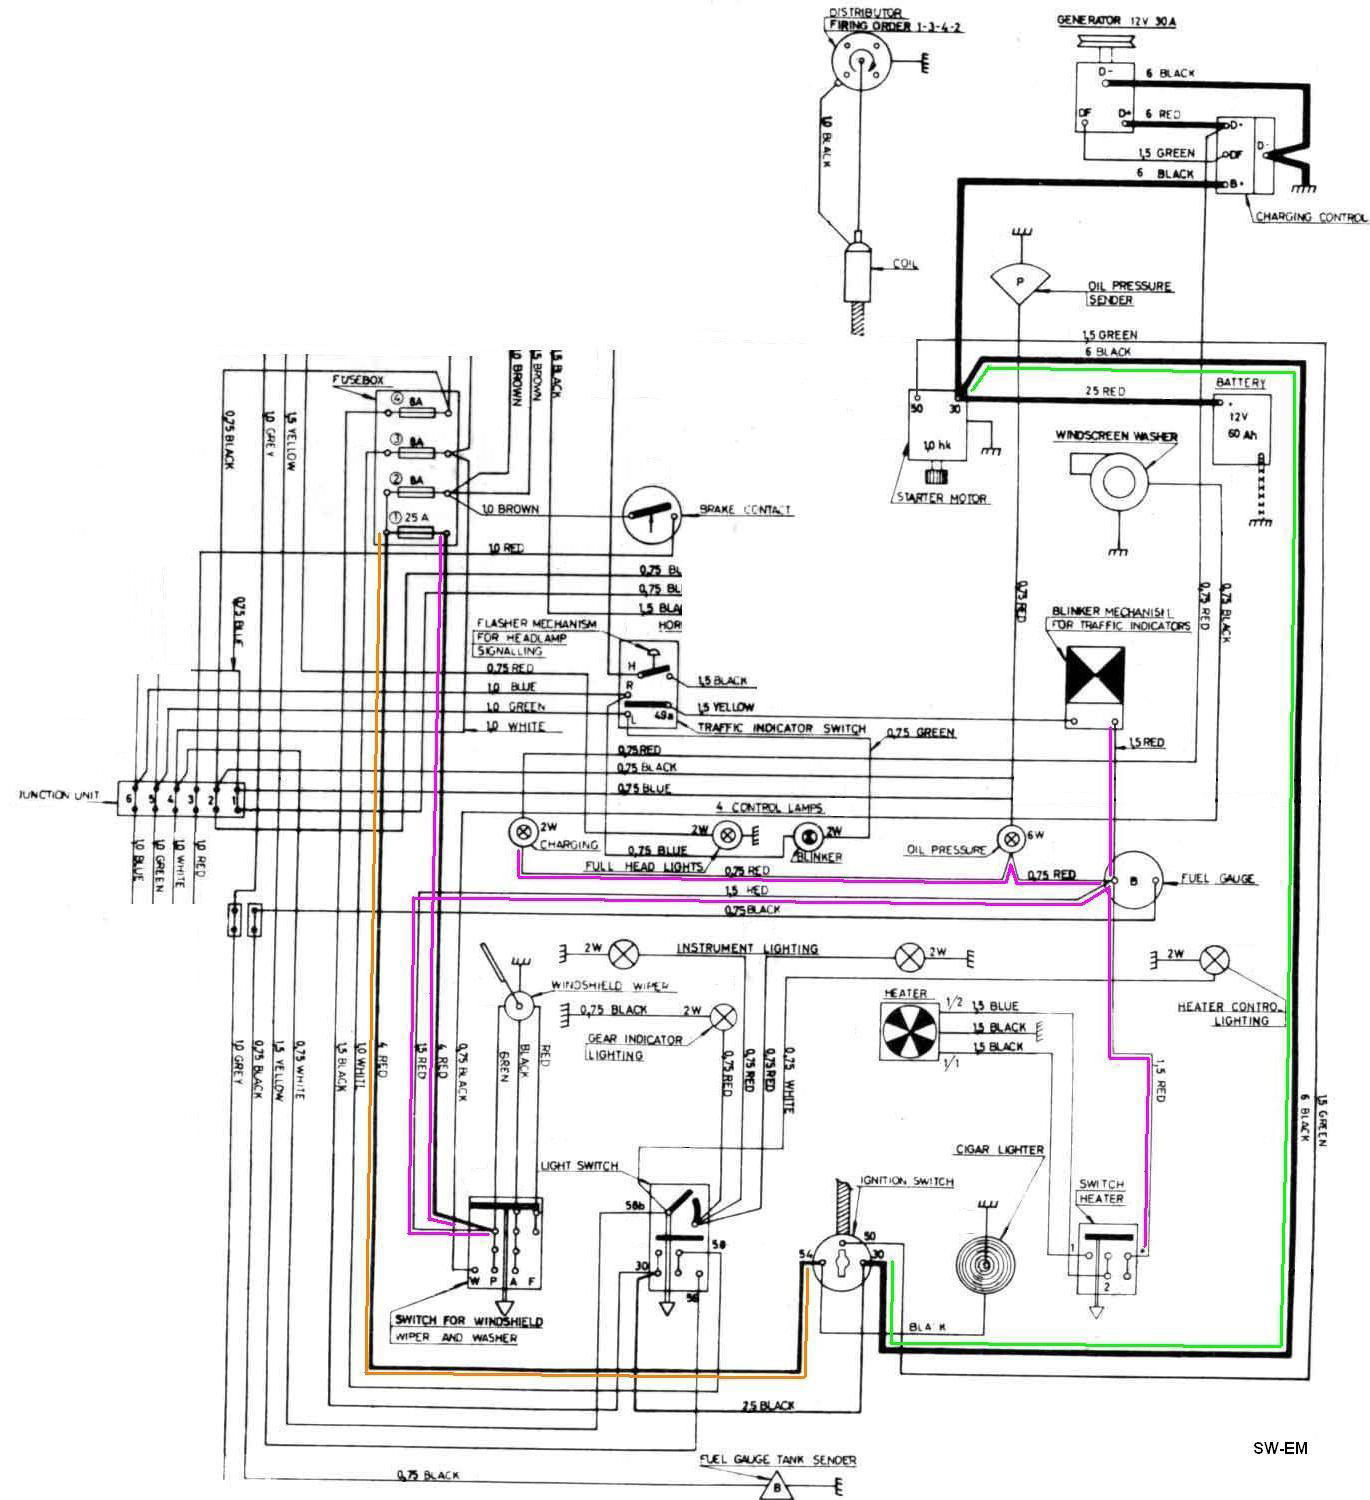 IGN SW wiring diag 122 markup 1800 ignition wiring swedish vs british design volvo penta wiring harness diagram at n-0.co